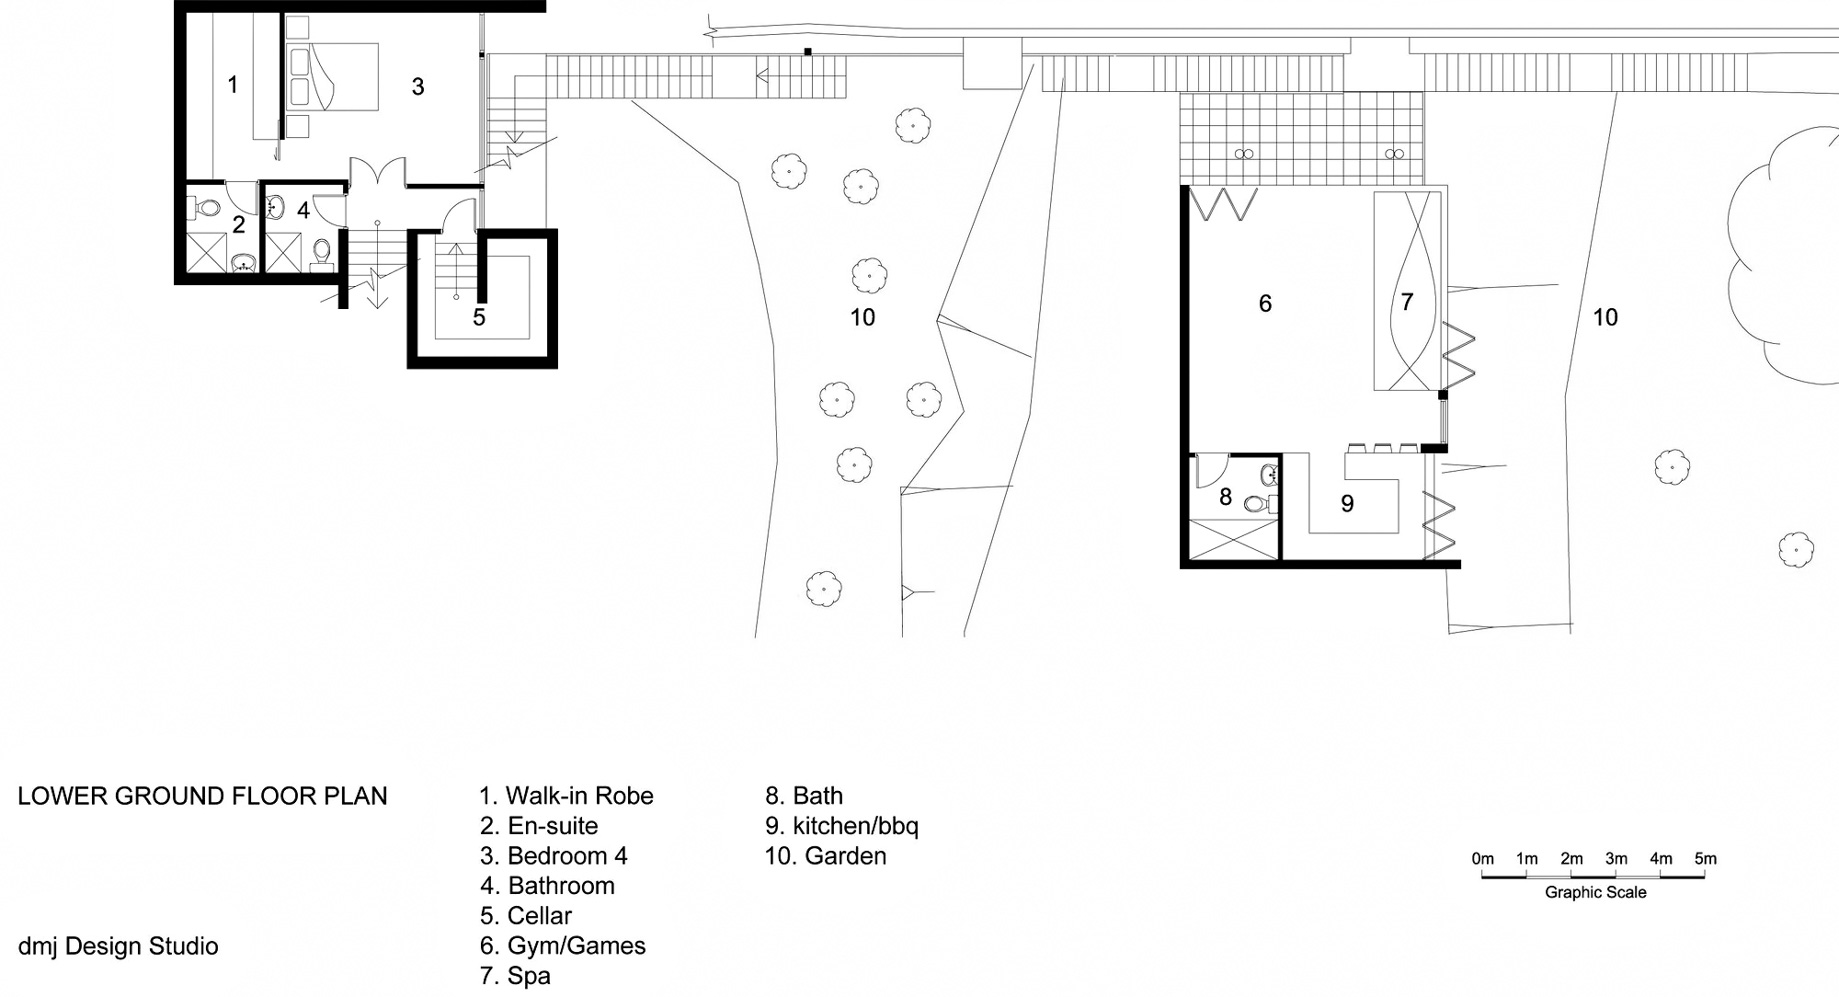 Lower Ground Floor Plan - 36 Kangaroo Point Road Residence - Kangaroo Point, Sydney, NSW, Australia